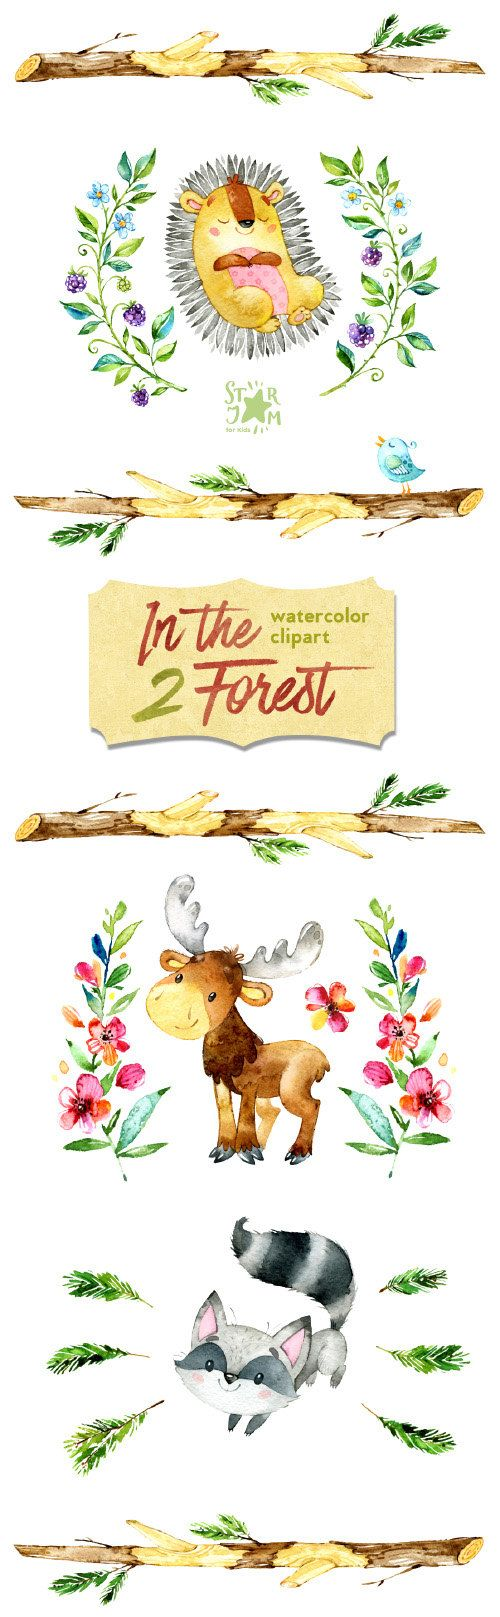 This Second part of Forest animals clipart set is just what you needed for the perfect invitations, craft projects, paper products, party decorations, printable, greetings cards, posters, stationery, scrapbooking, stickers, t-shirts, baby clothes, web designs and much more.  :::::: DETAILS ::::::  This collection includes 29 clipart elements: - 10 animals images in separate PNG files, transparent background, size: 11.3-6.6in (3400-2000px) - 19 Elements in separate PNG files, transparent…